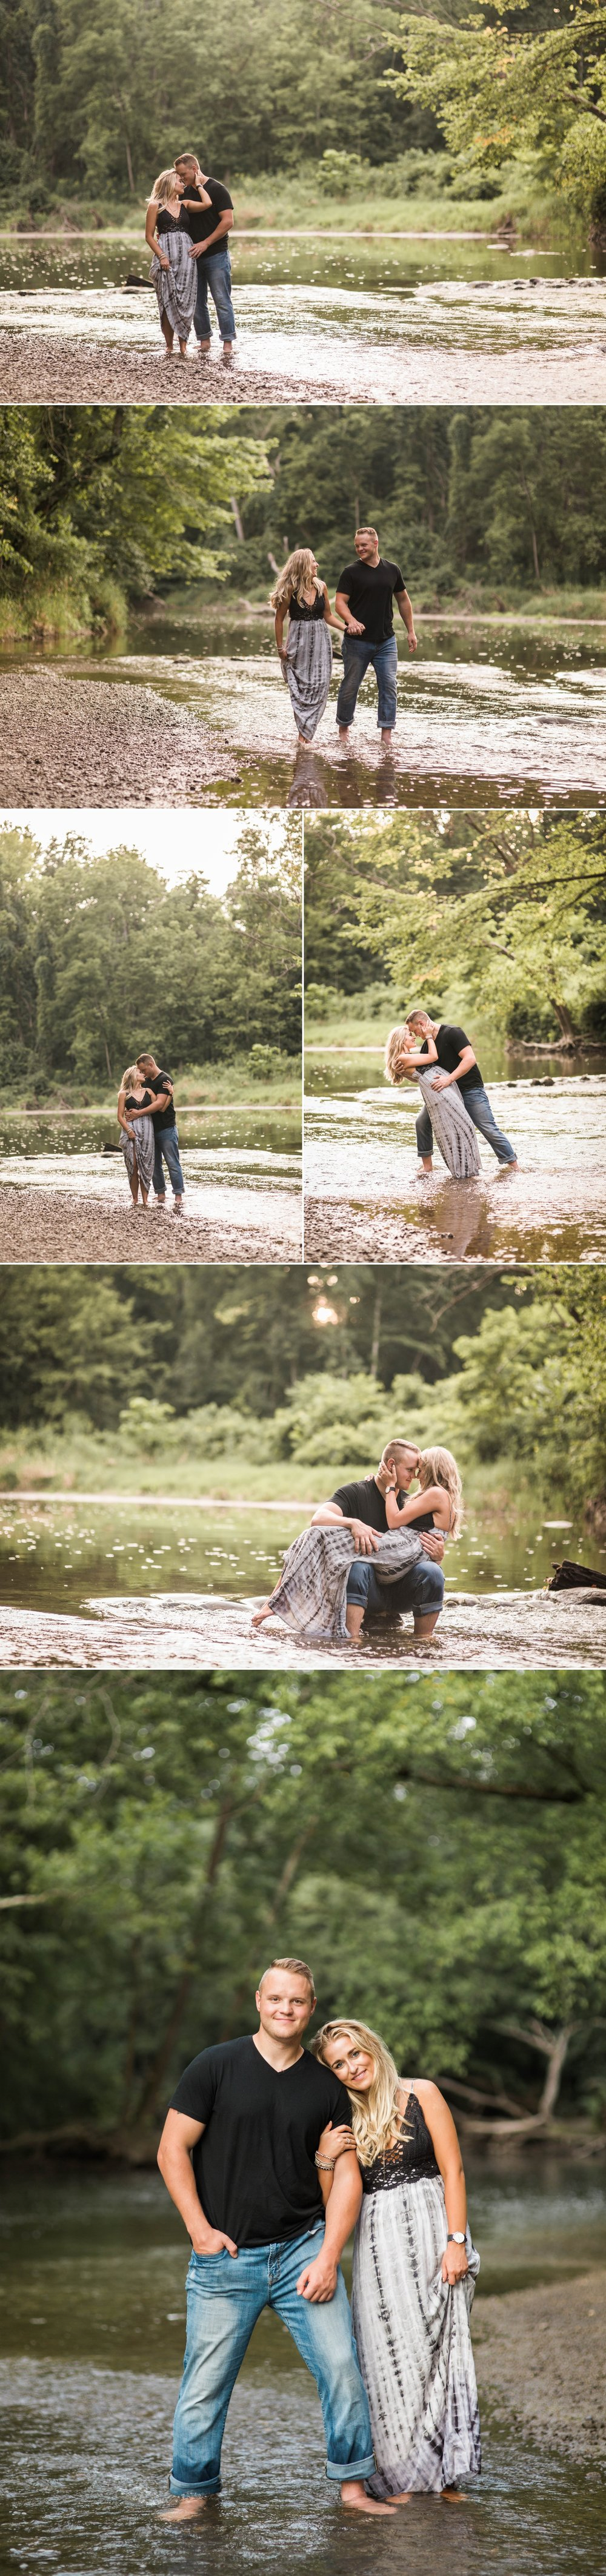 engagement session-field-summer-love-sunset-kiss-park-country-fort wayne-indiana-pond-river